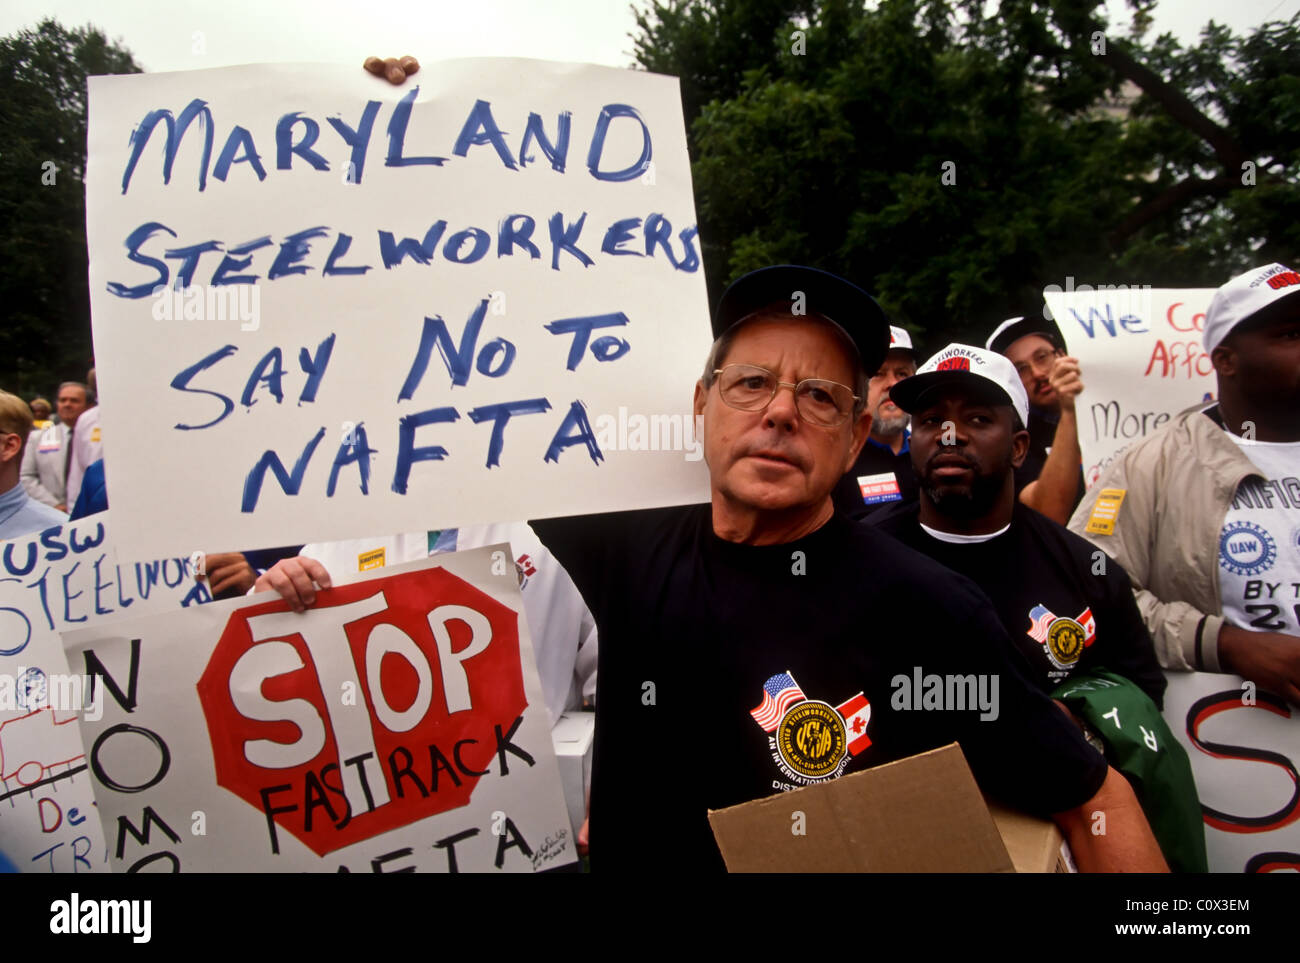 Unions and workers protest NAFTA enlargement outside The White House in Washington, DC. September 11, 1997 - Stock Image